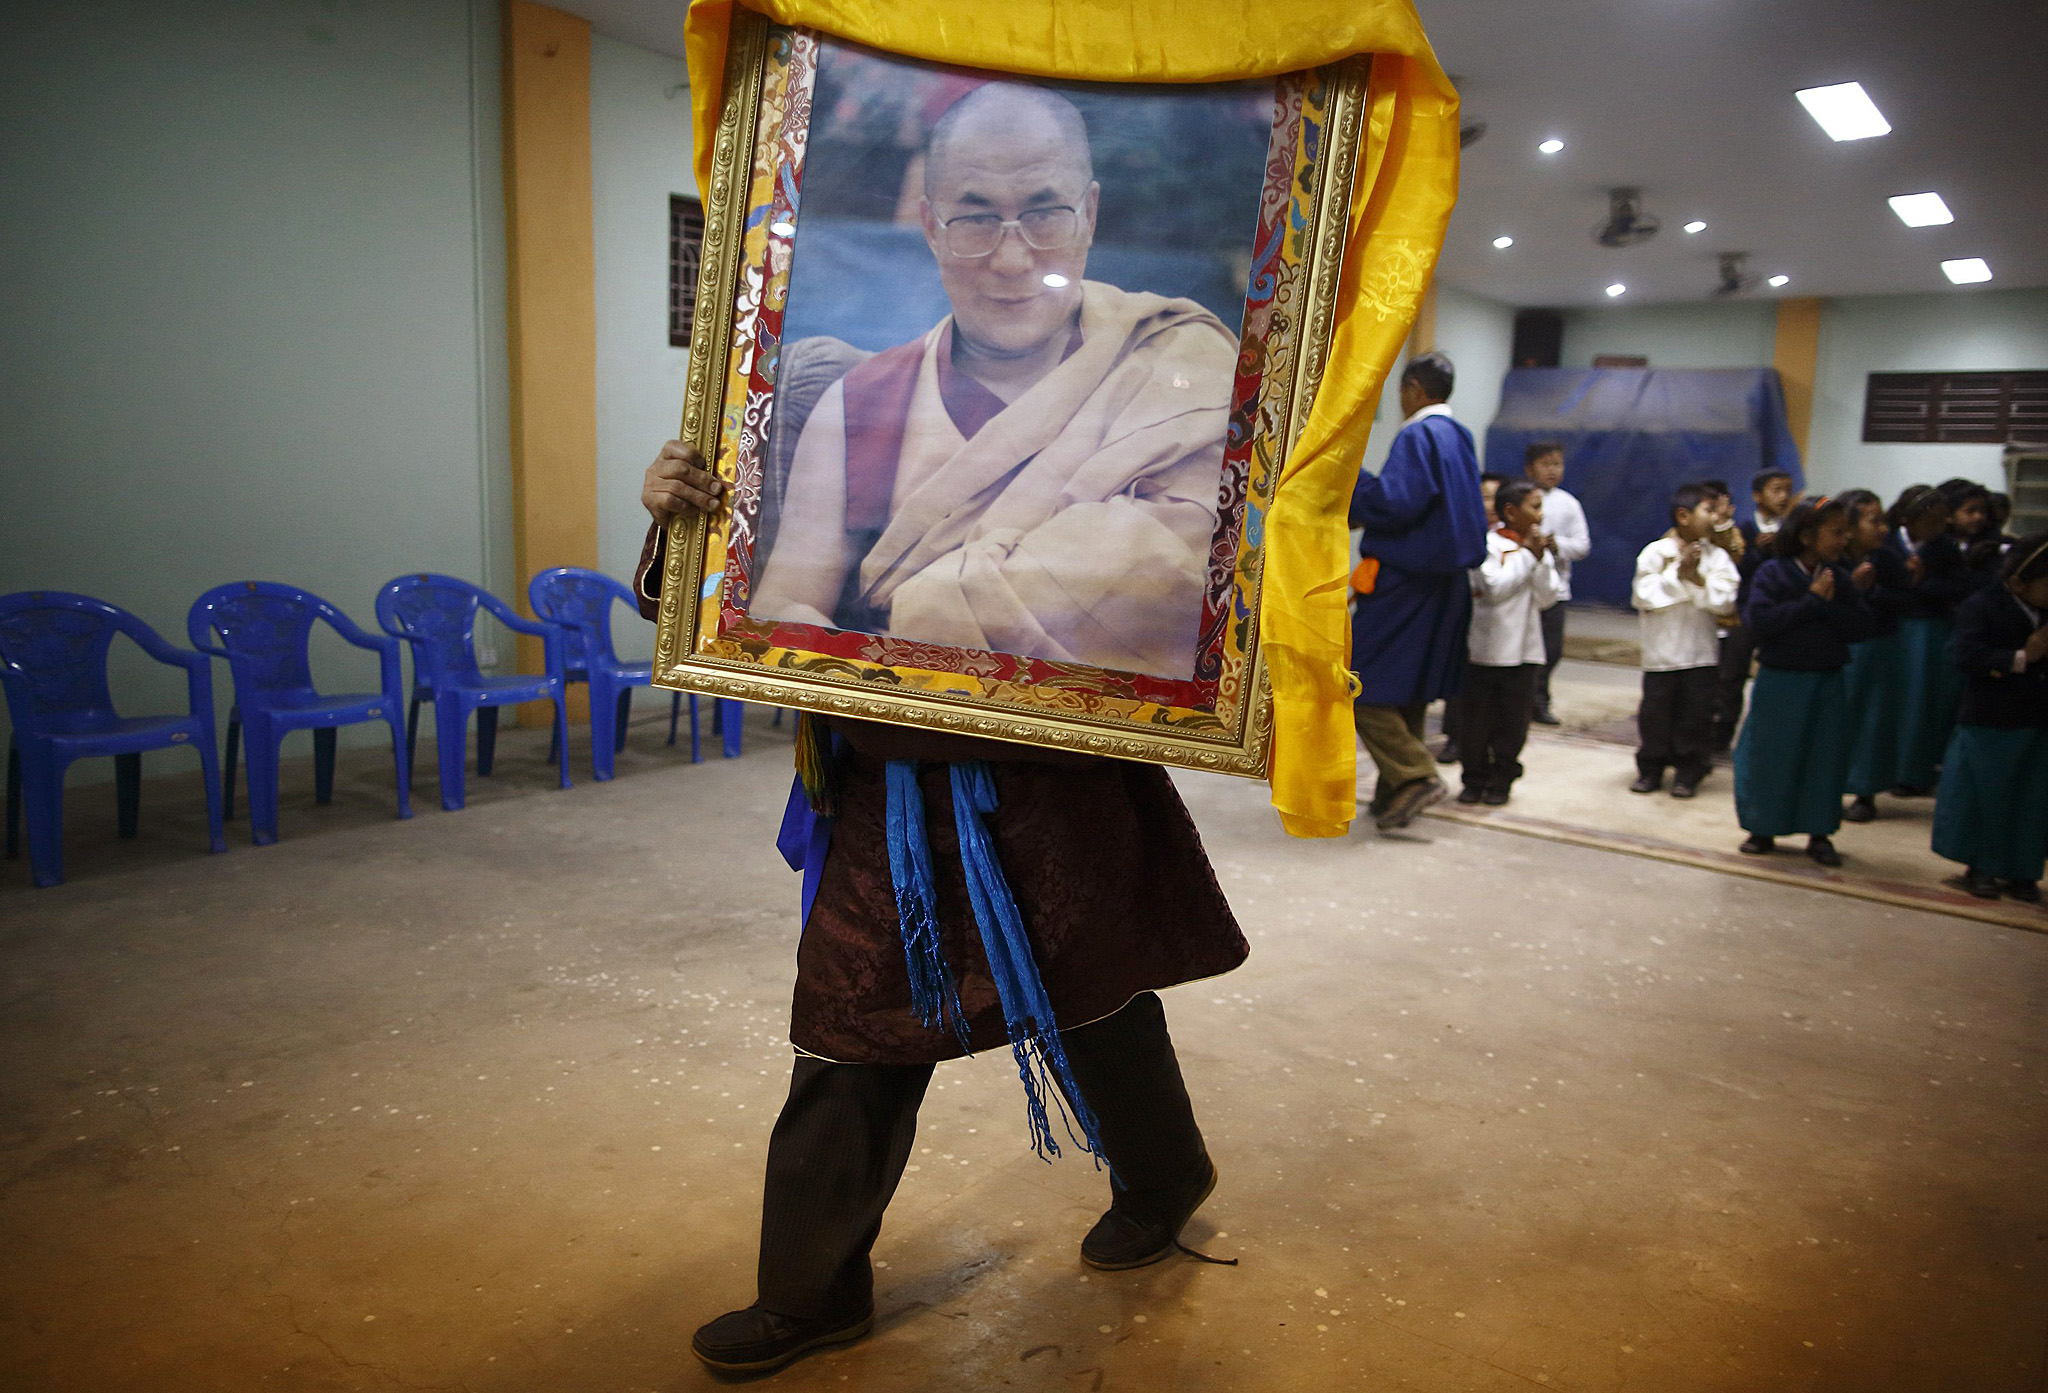 A Tibetan man carries a portrait of exiled Tibetan spiritual leader, the Dalai Lama, during a function to mark the 56th Tibetan Uprising Day at the Tibetan Refugee camp in Lalitpur...A Tibetan man carries a portrait of exiled Tibetan spiritual leader, the Dalai Lama, during the function to mark the 56th Tibetan Uprising Day at the Tibetan Refugee camp in Lalitpur March 10, 2015. With a growing Chinese influence over Nepal, the Nepalese government stands strong against Tibetan exiles protesting in support of their homeland. Nepal ceased issuing refugee papers to Tibetans in 1989 and recognizes Tibet to be a part of China. REUTERS/Navesh Chitrakar (NEPAL - Tags: RELIGION POLITICS)